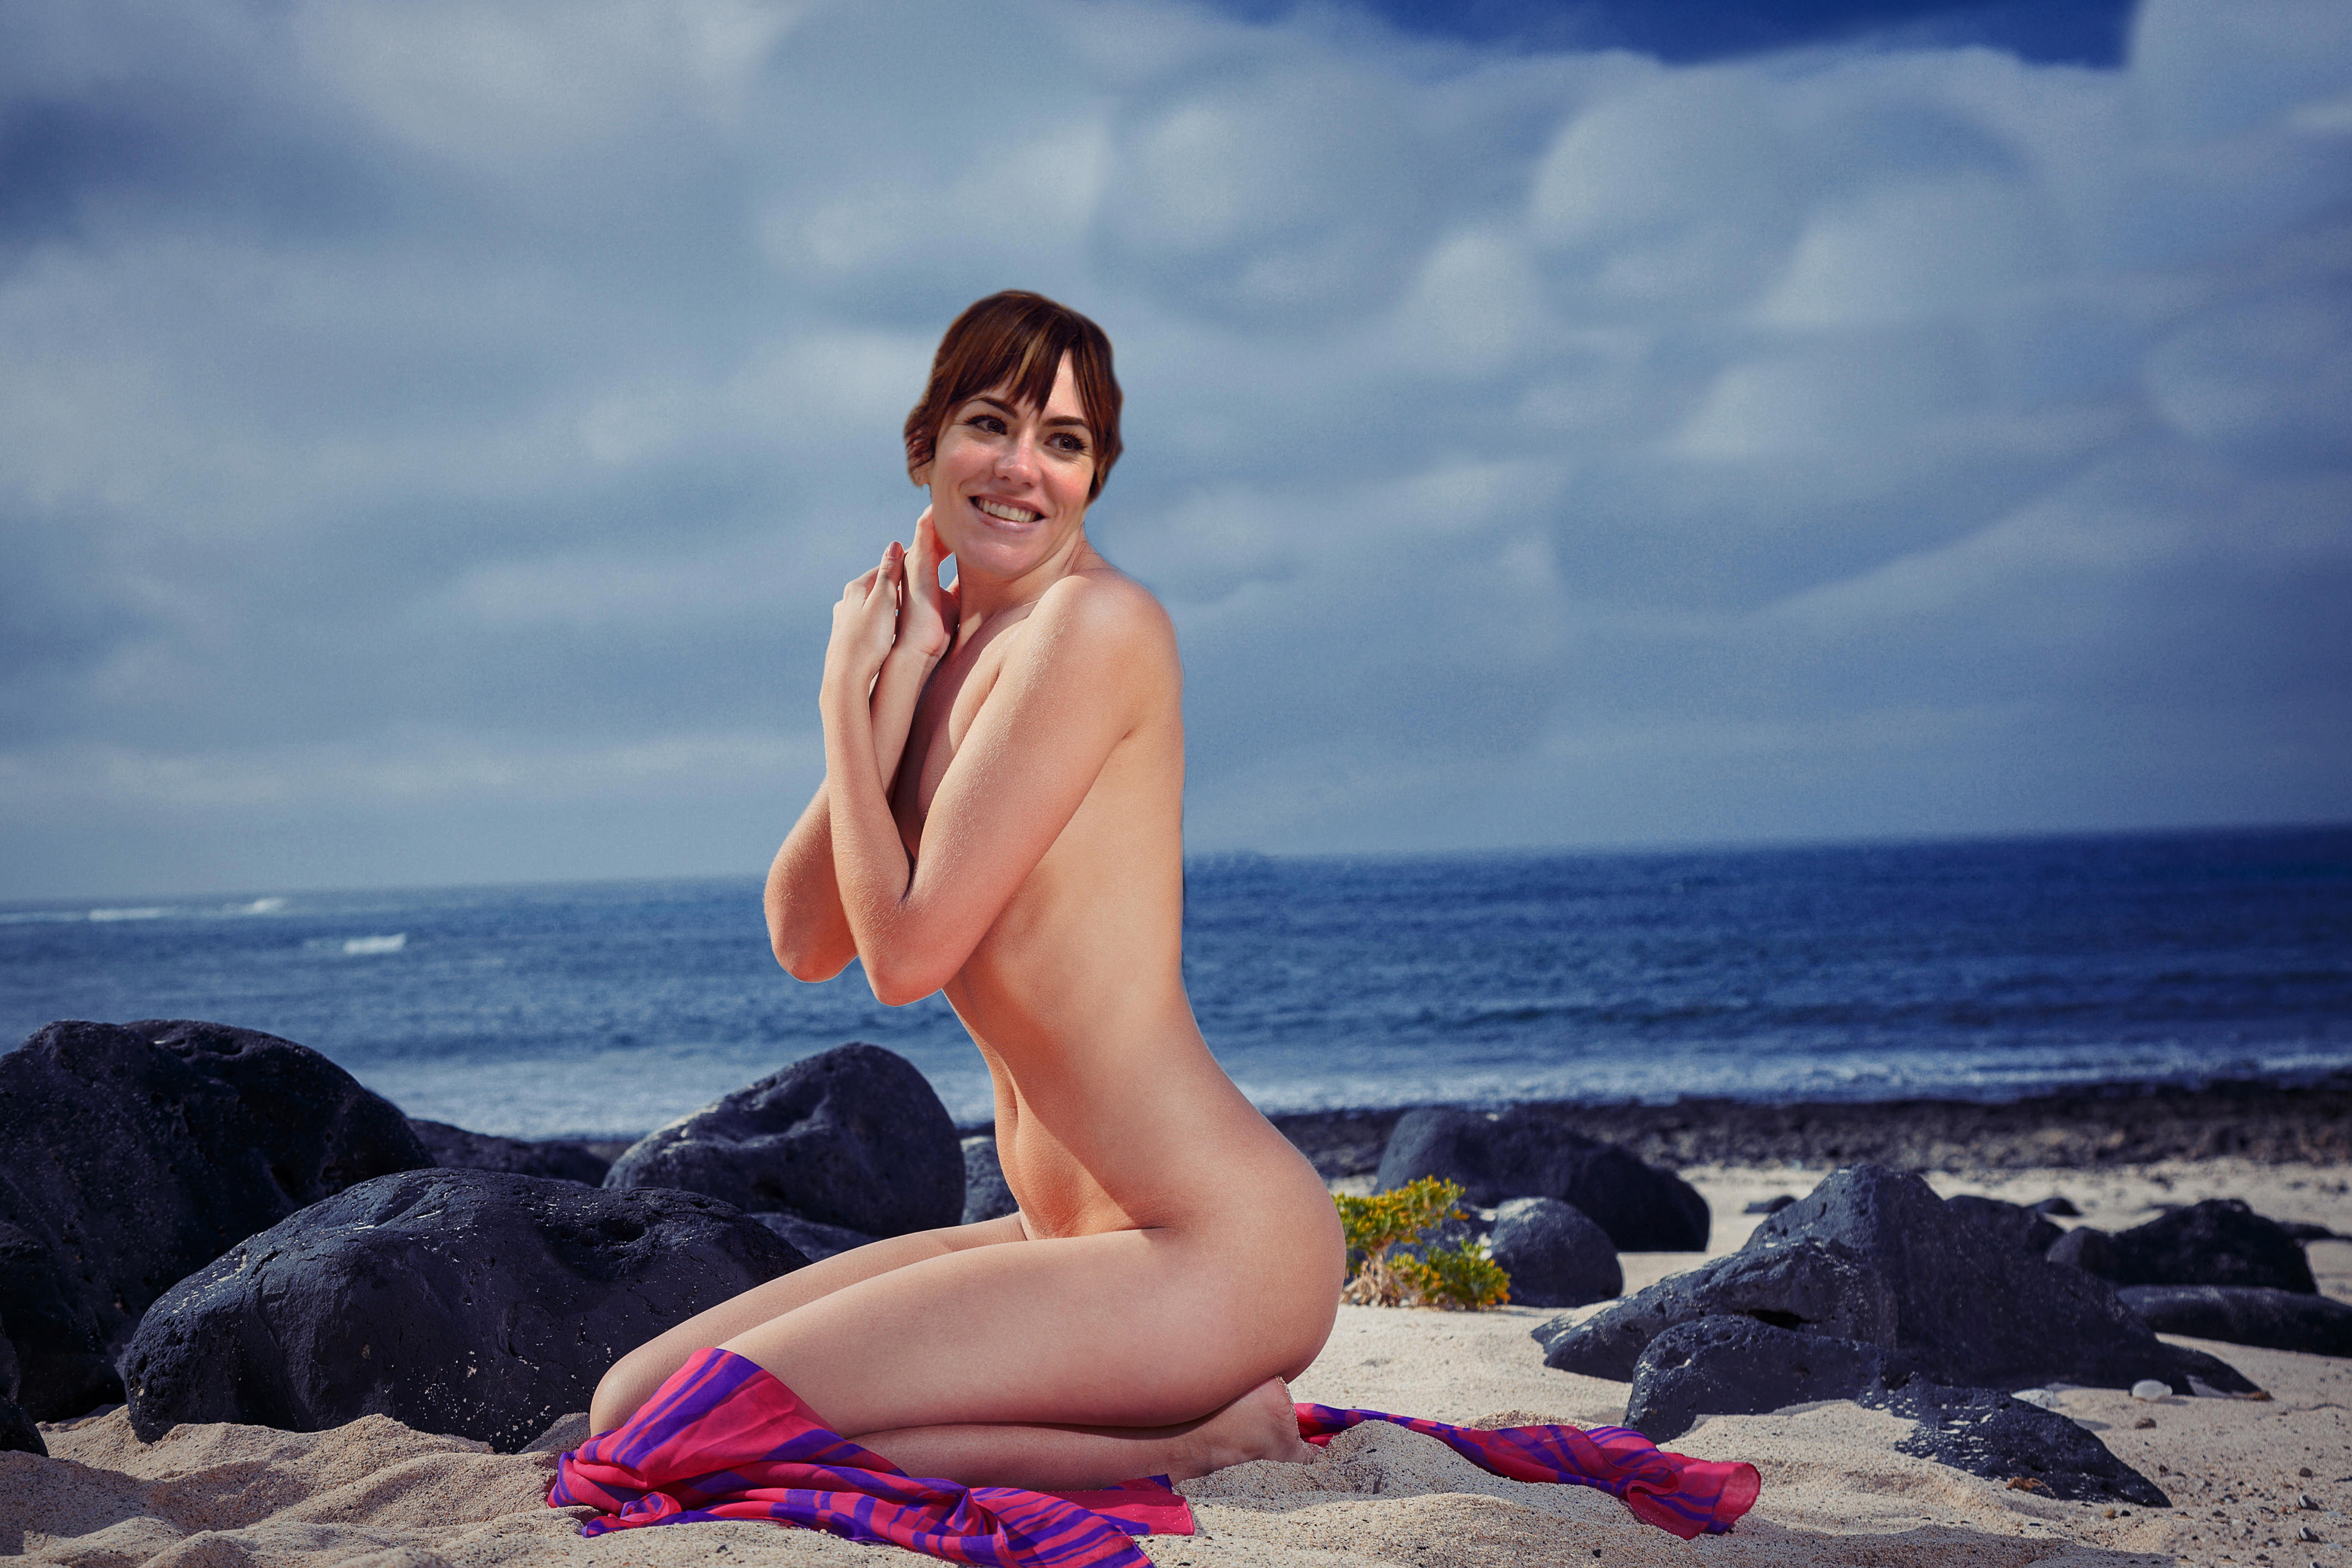 Maggie siff naked